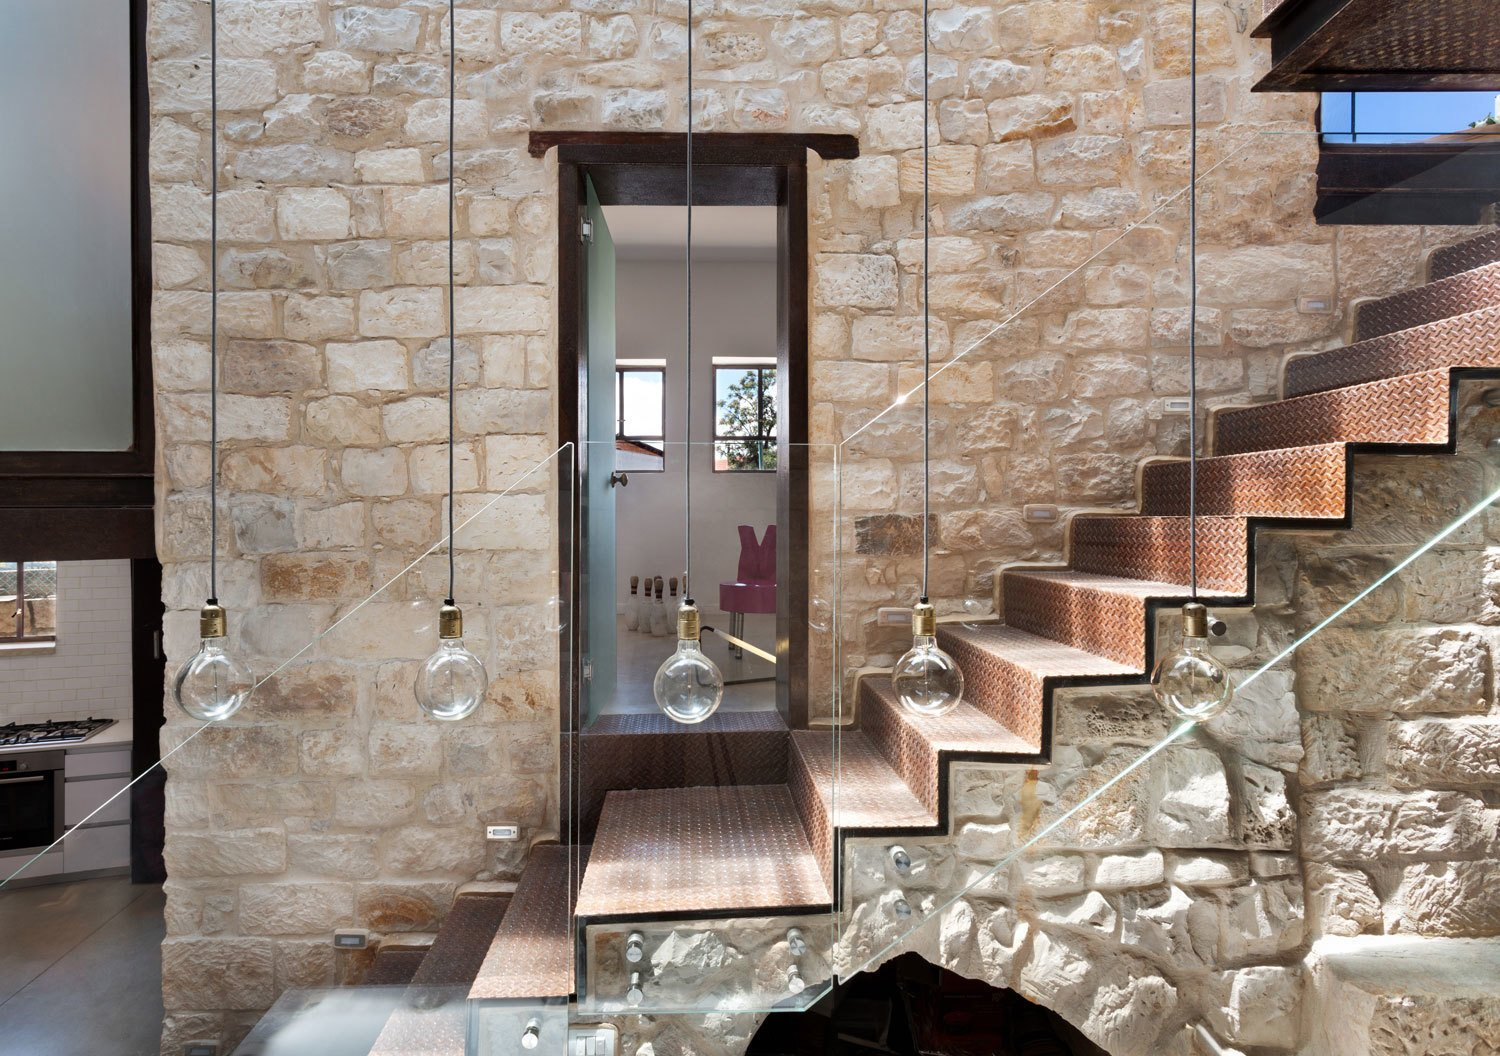 a 250-year-old stone house in israel with a surprisingly modern